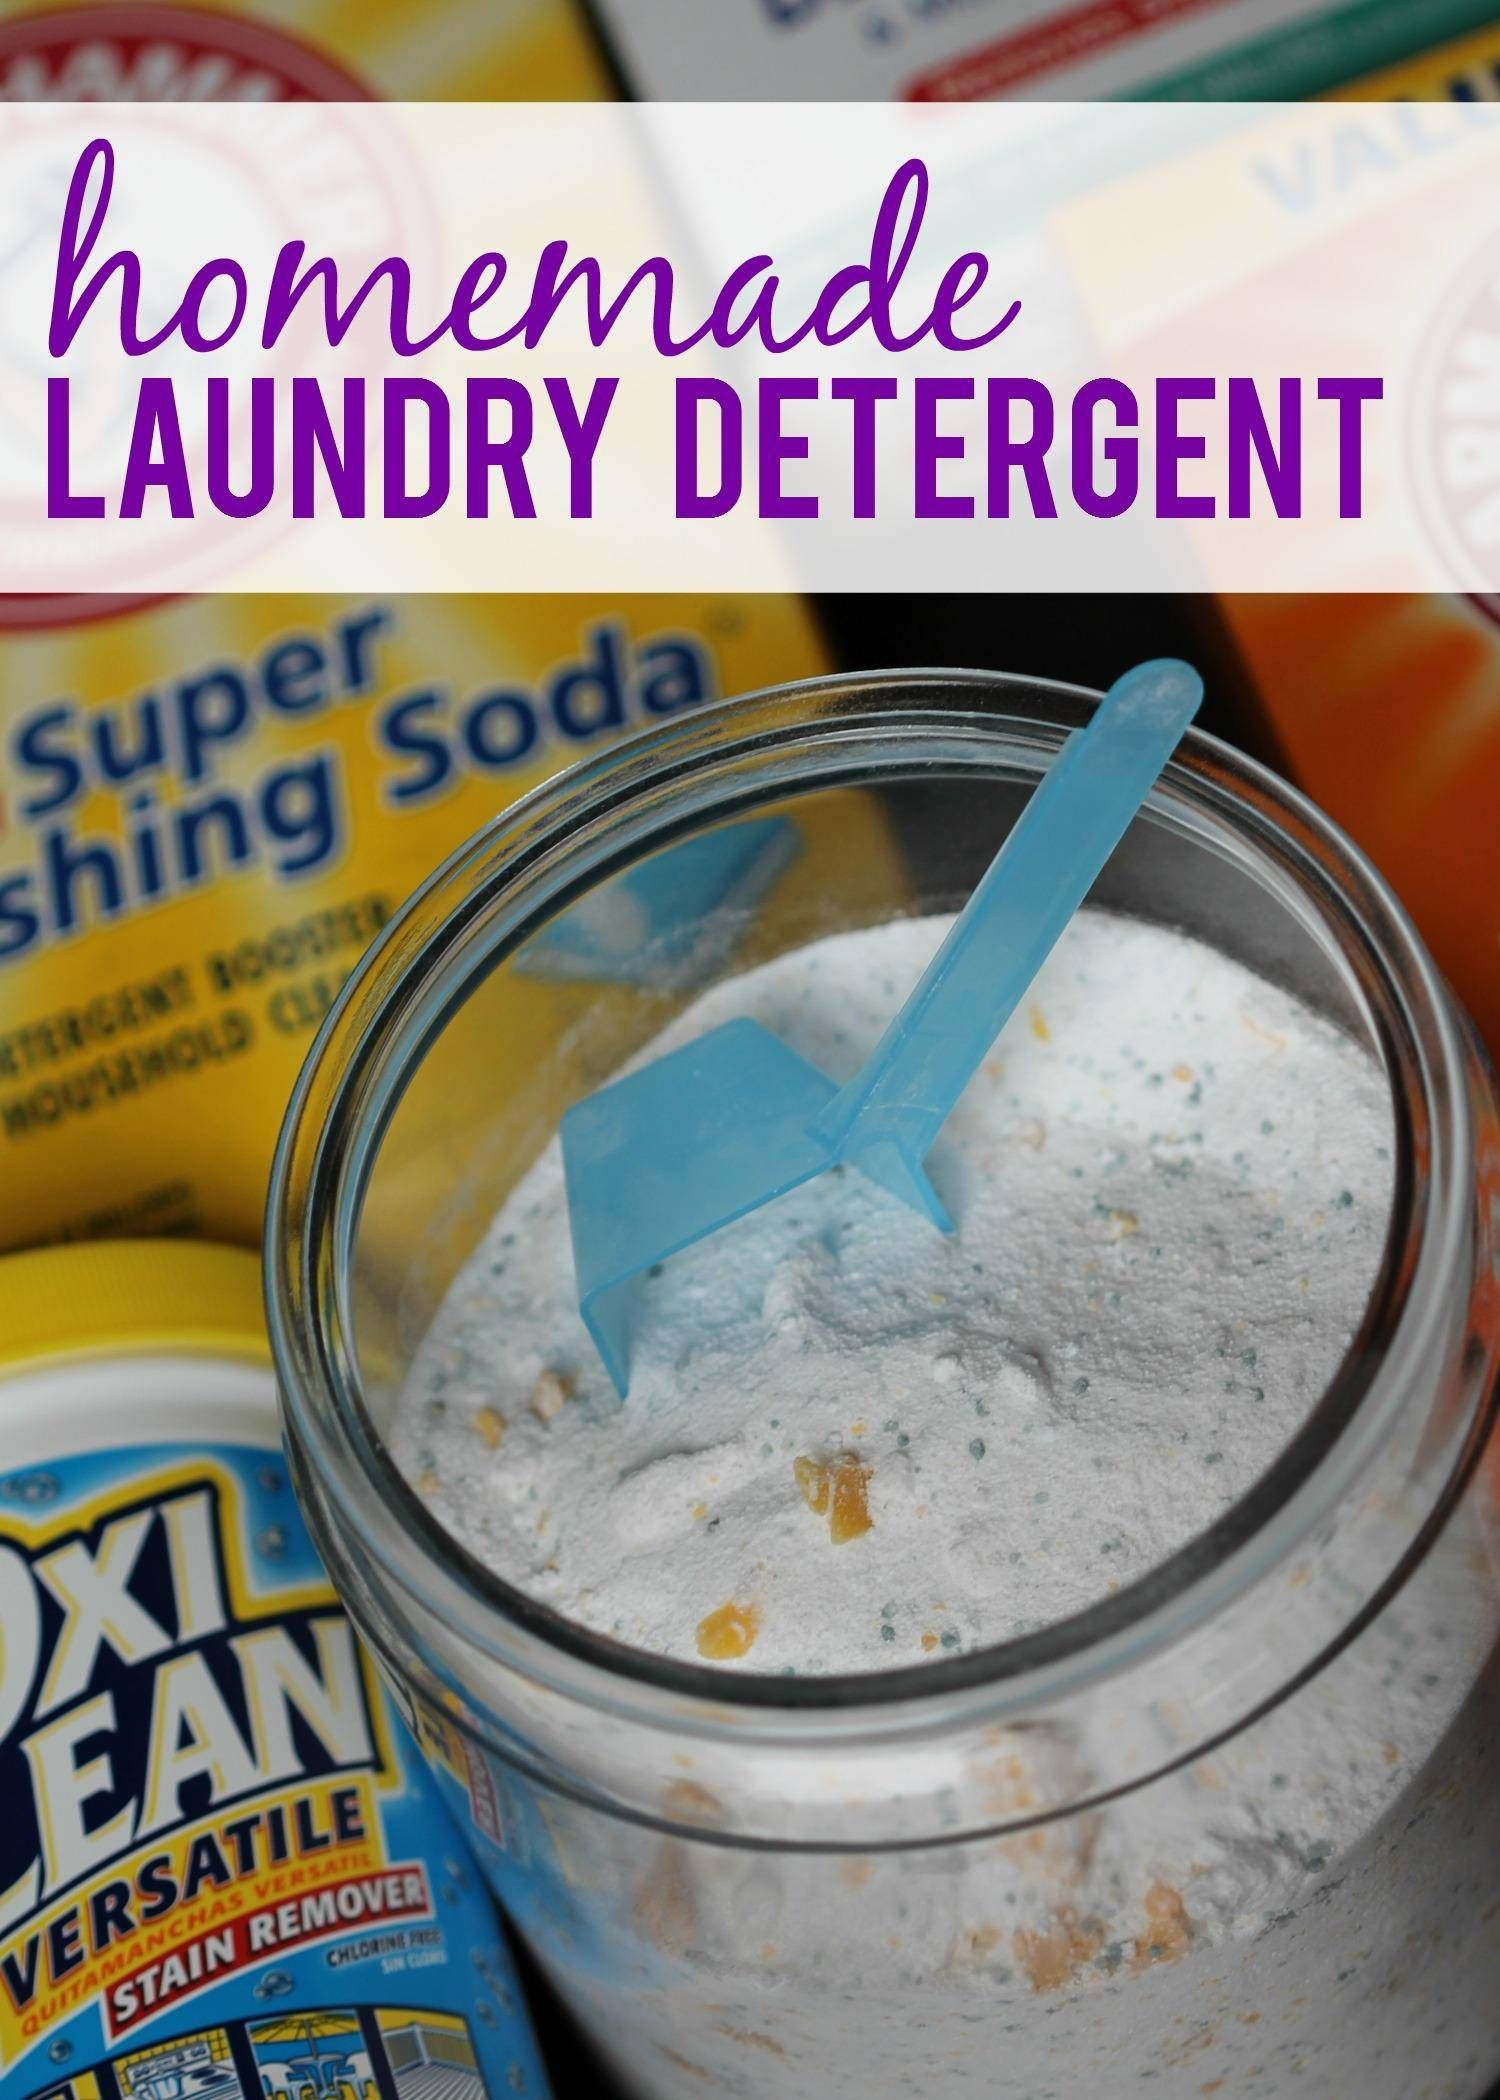 Homemade Laundry Detergent Powder Homemade Laundry Detergent